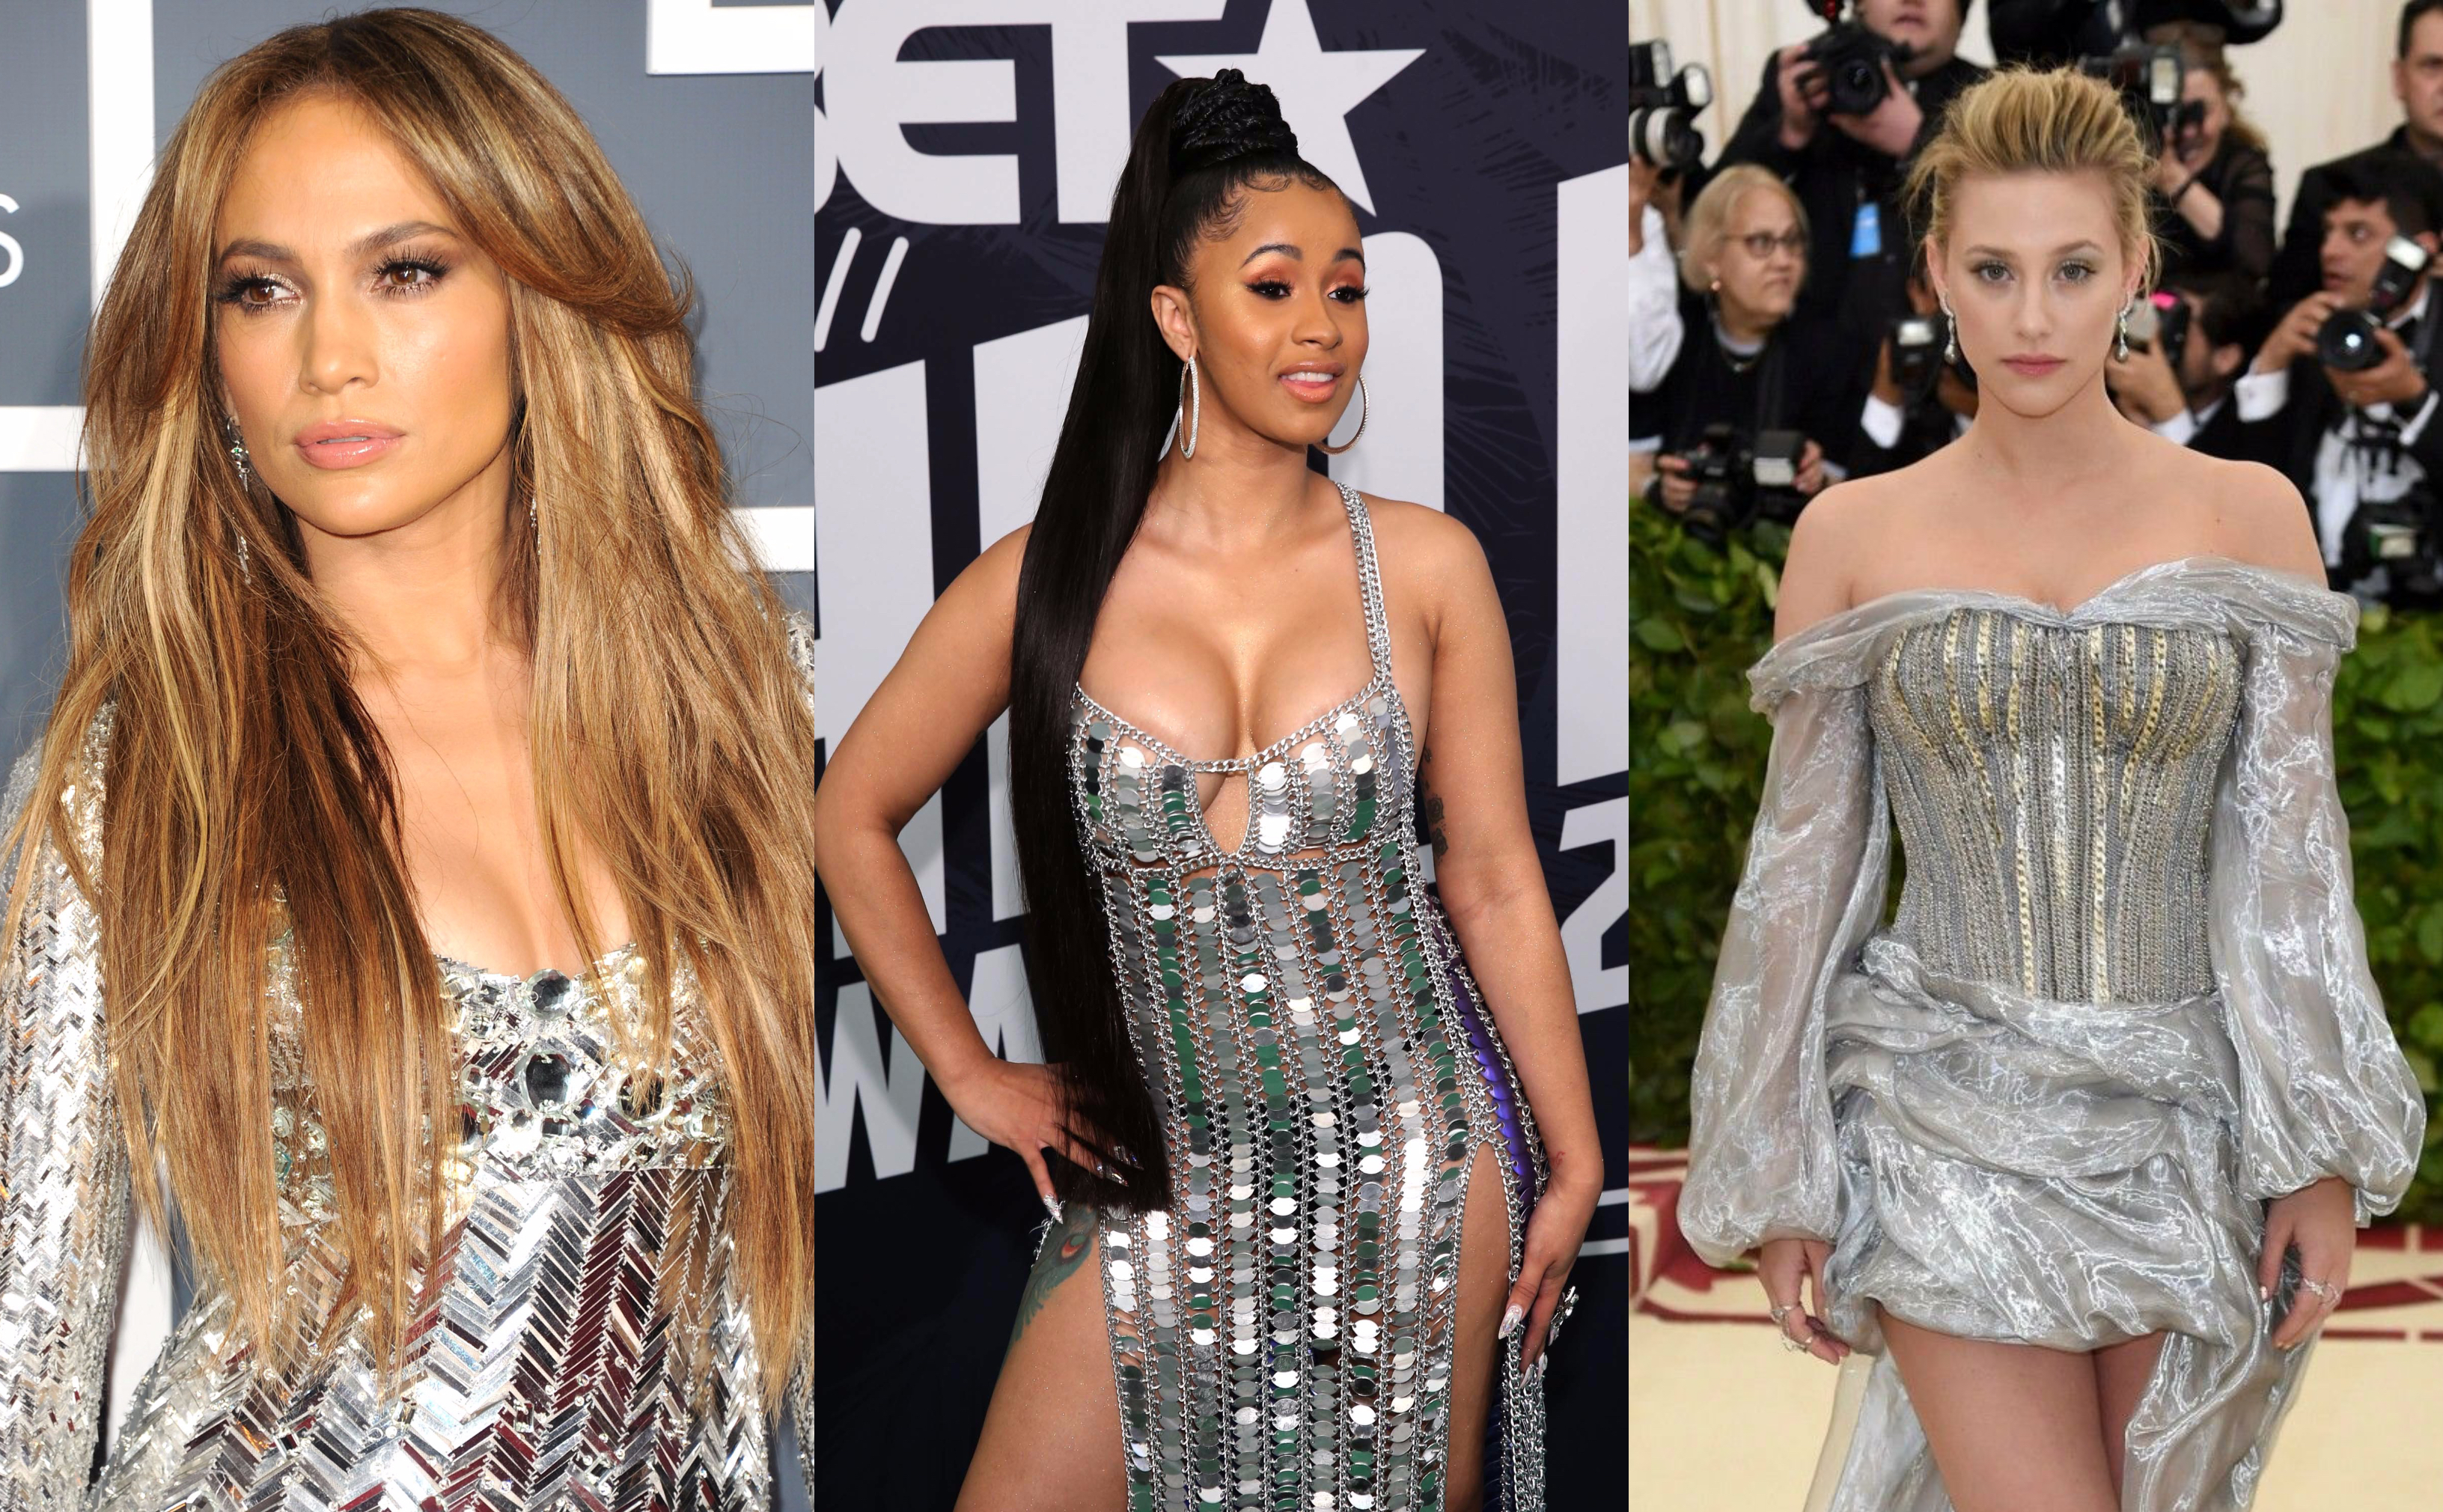 Cardi B Lili Reinhart And More Join Jennifer Lopez In